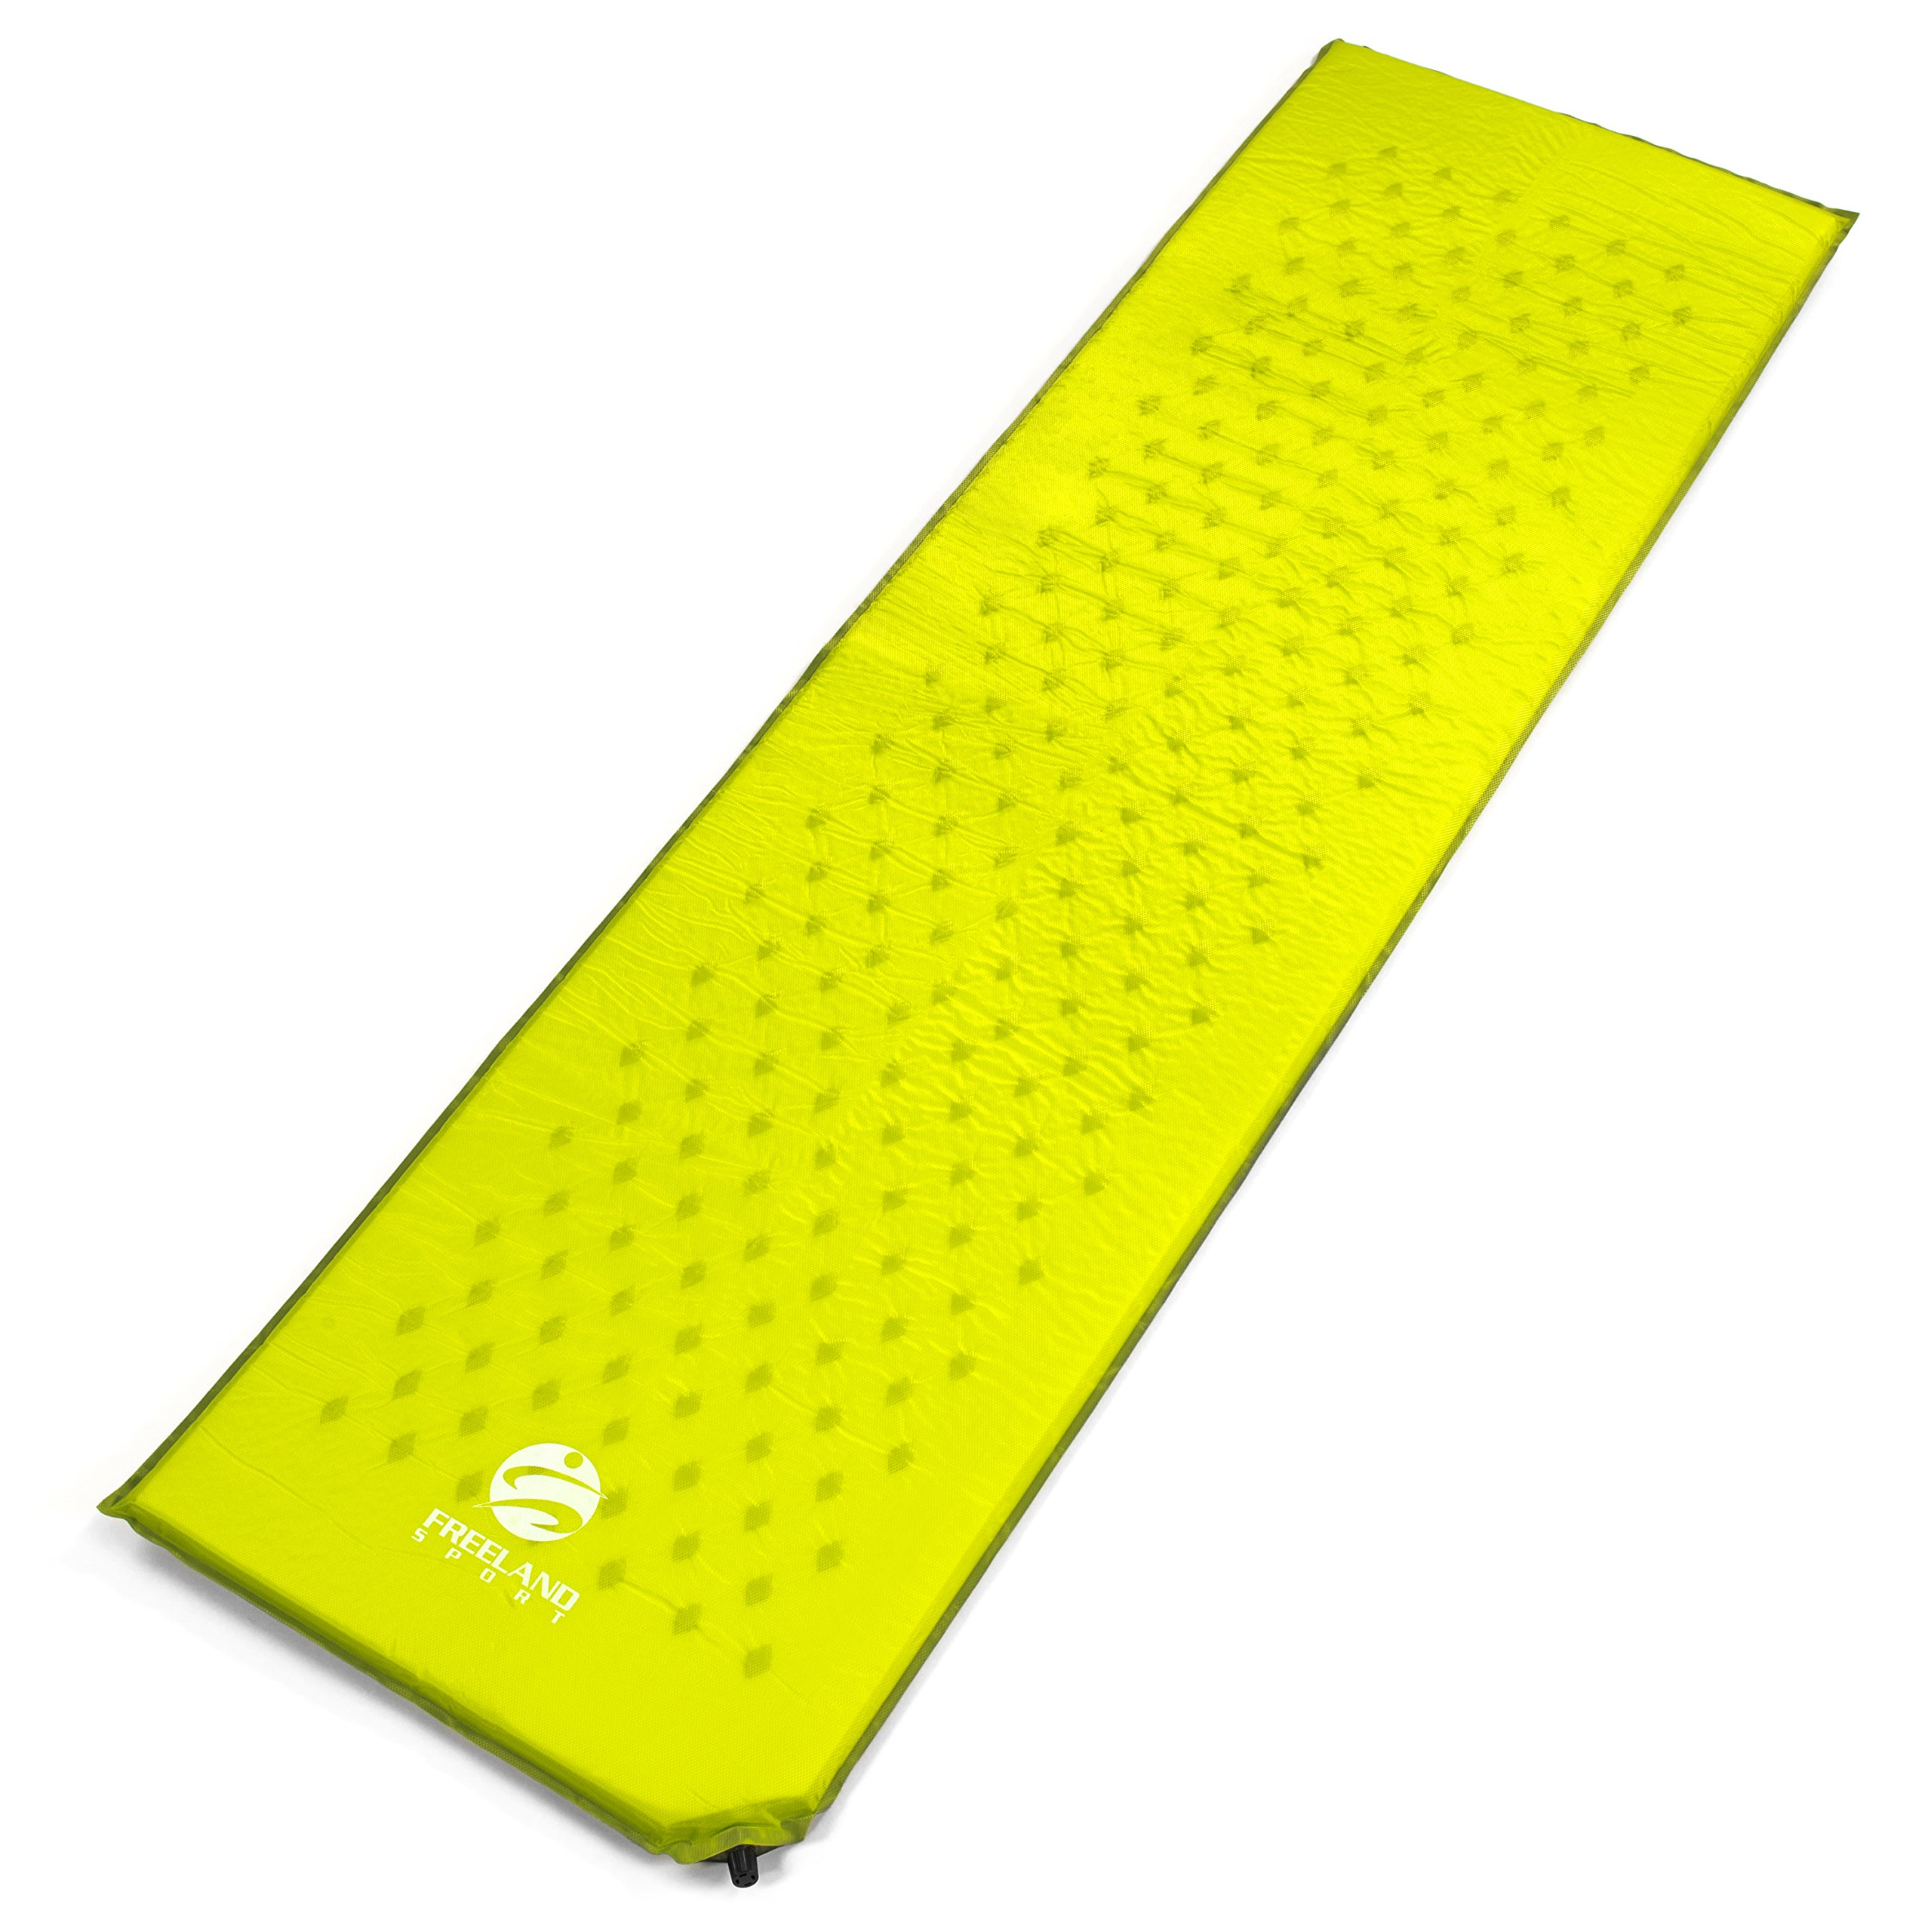 Freeland Sport Camping Self Inflating Sleeping Pad - Ultralight Foam Padding - Inflatable Mat/pad for Camping, Backpacking Hiking and Travel to Sleep Comfortably - Sturdy Air Valve Stops Air Loss